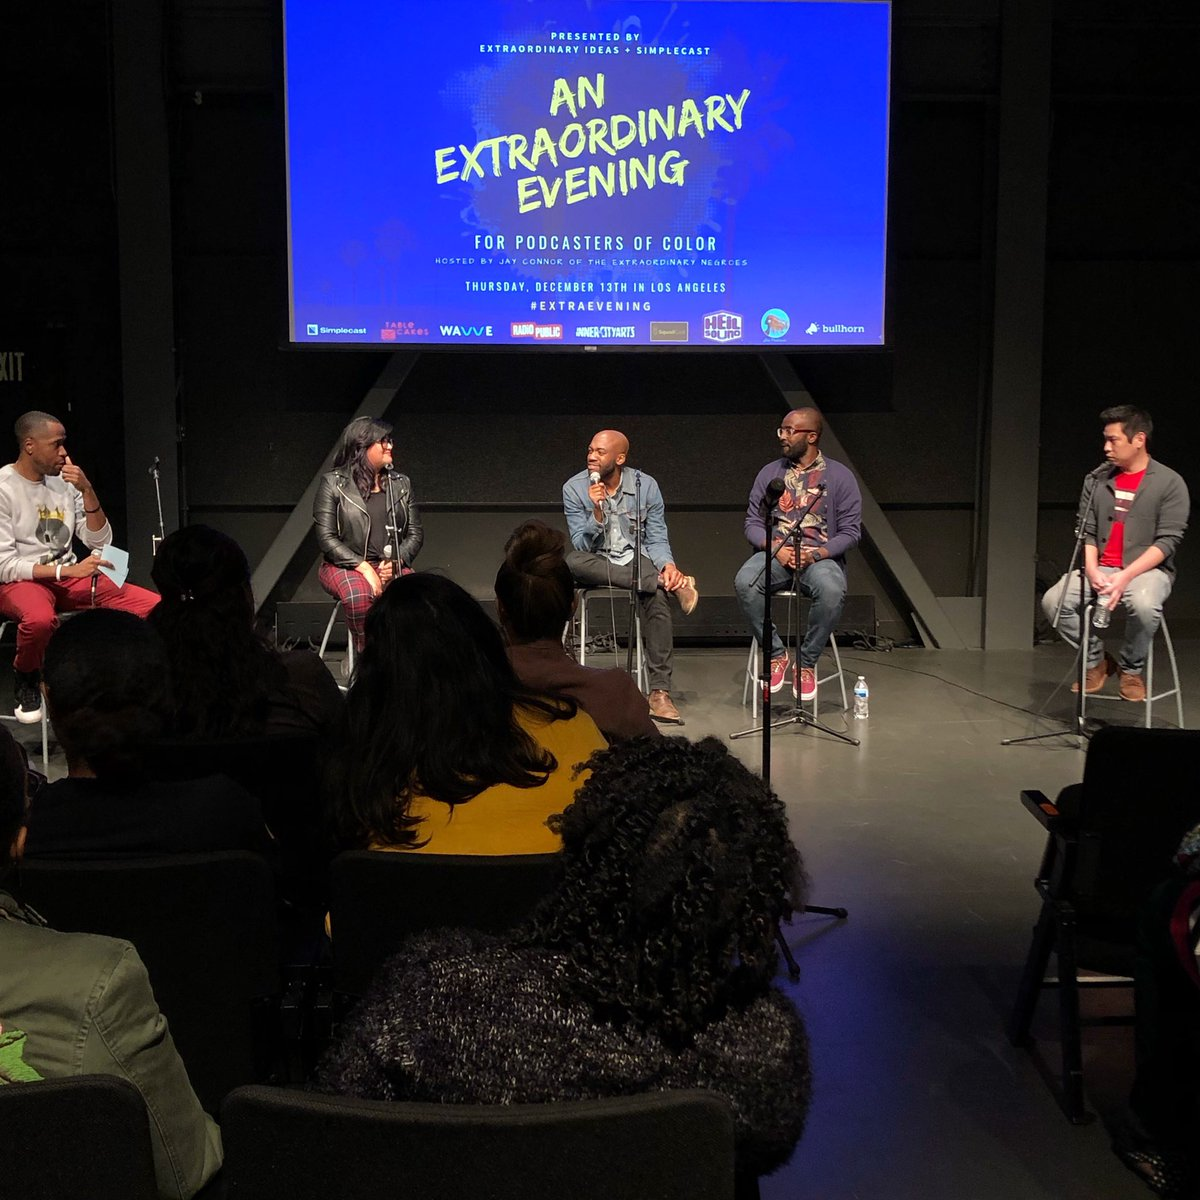 Those voices are making an amazing impact! #podcastersofcolor #podcasts